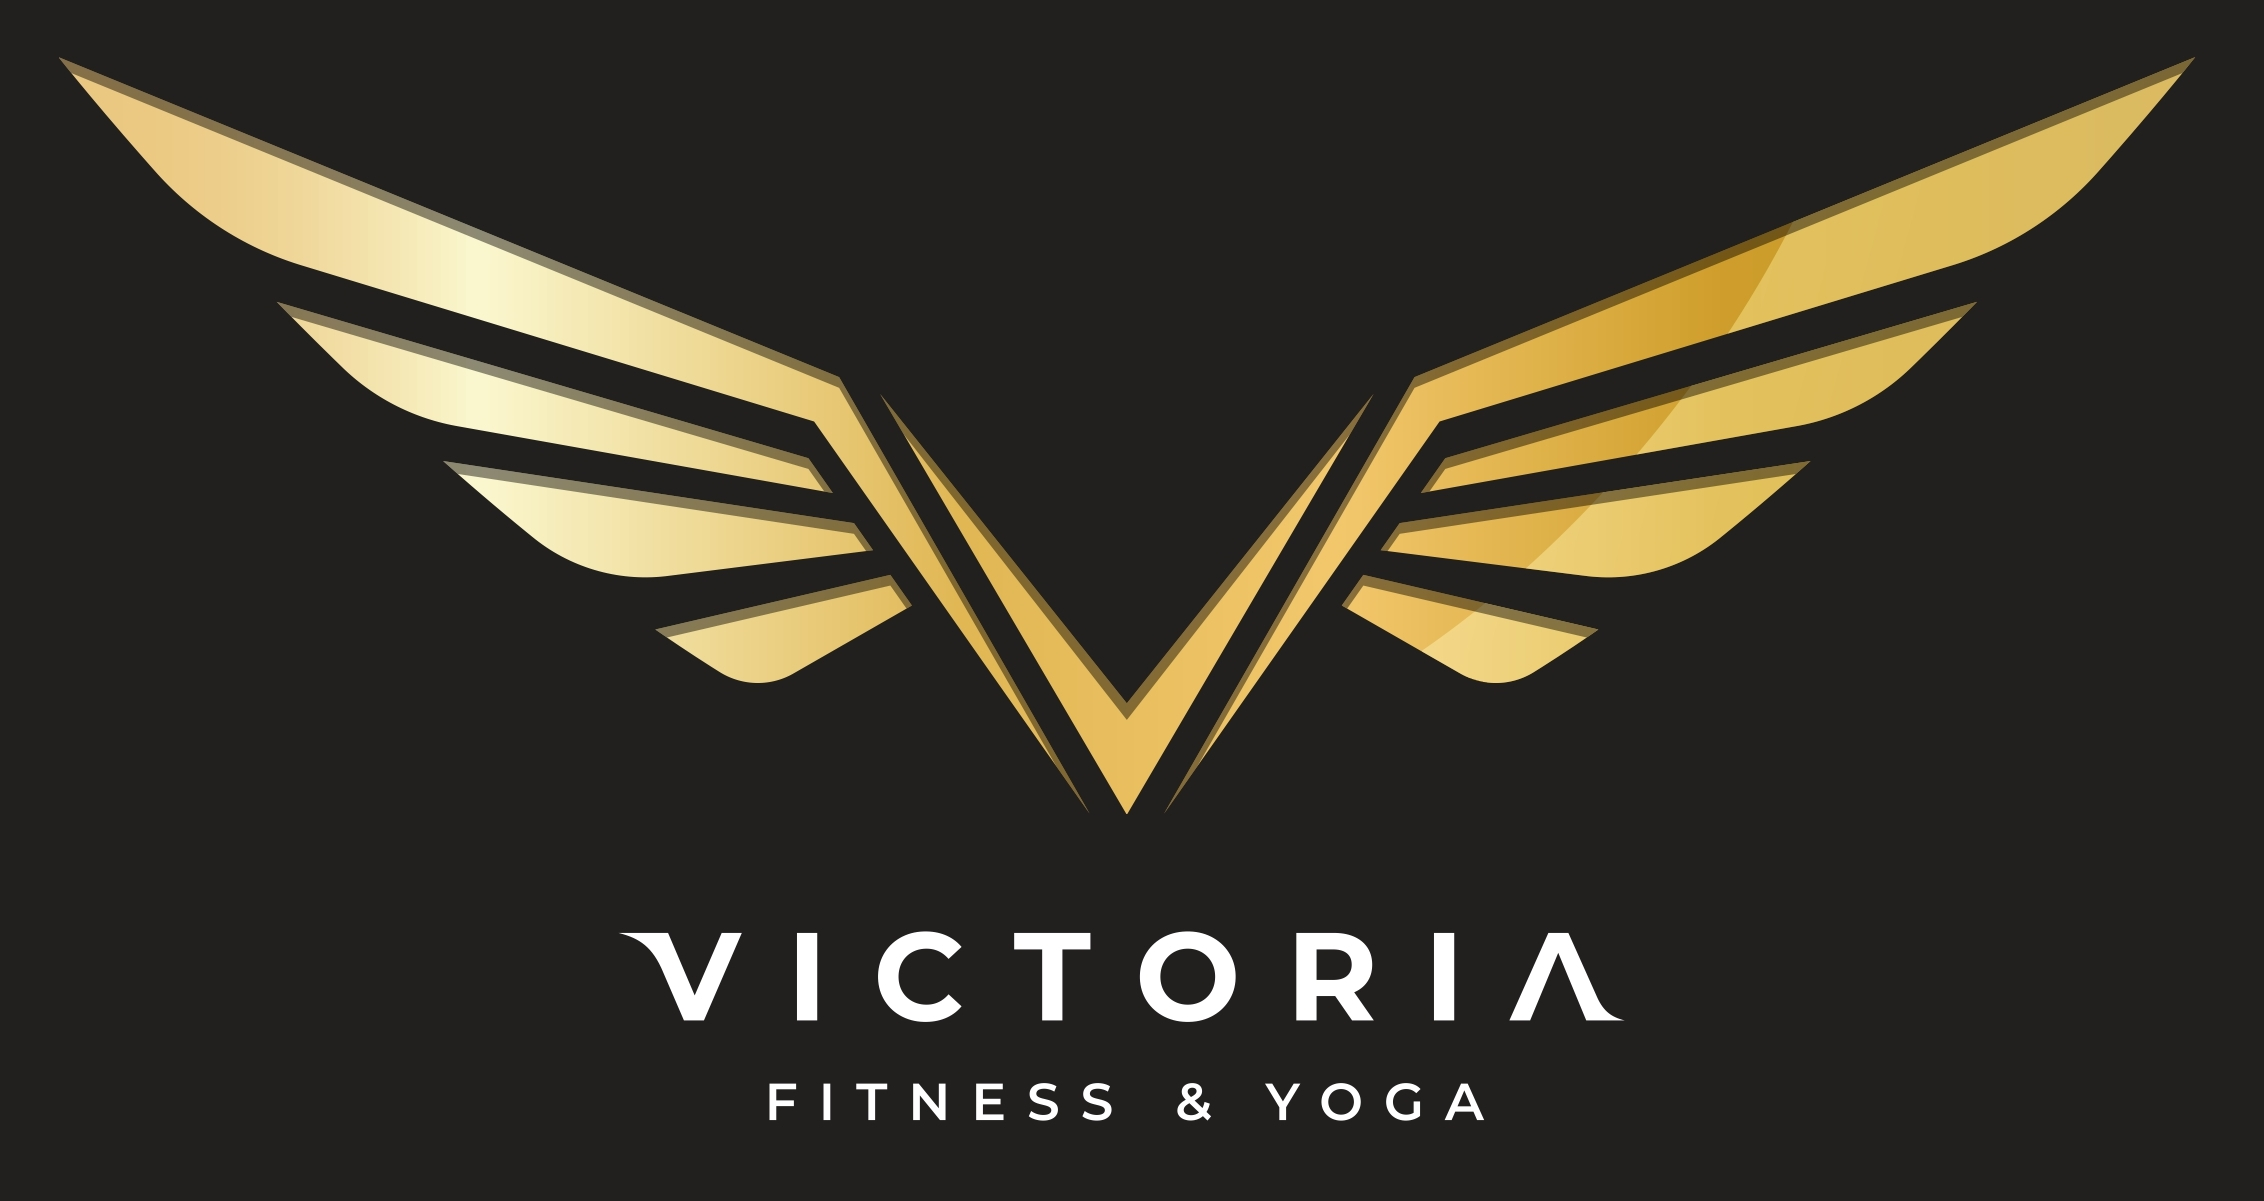 Victoria - Yoga & Fitness - Client's file - Digital - sRGB_pages-to-jpg-0001